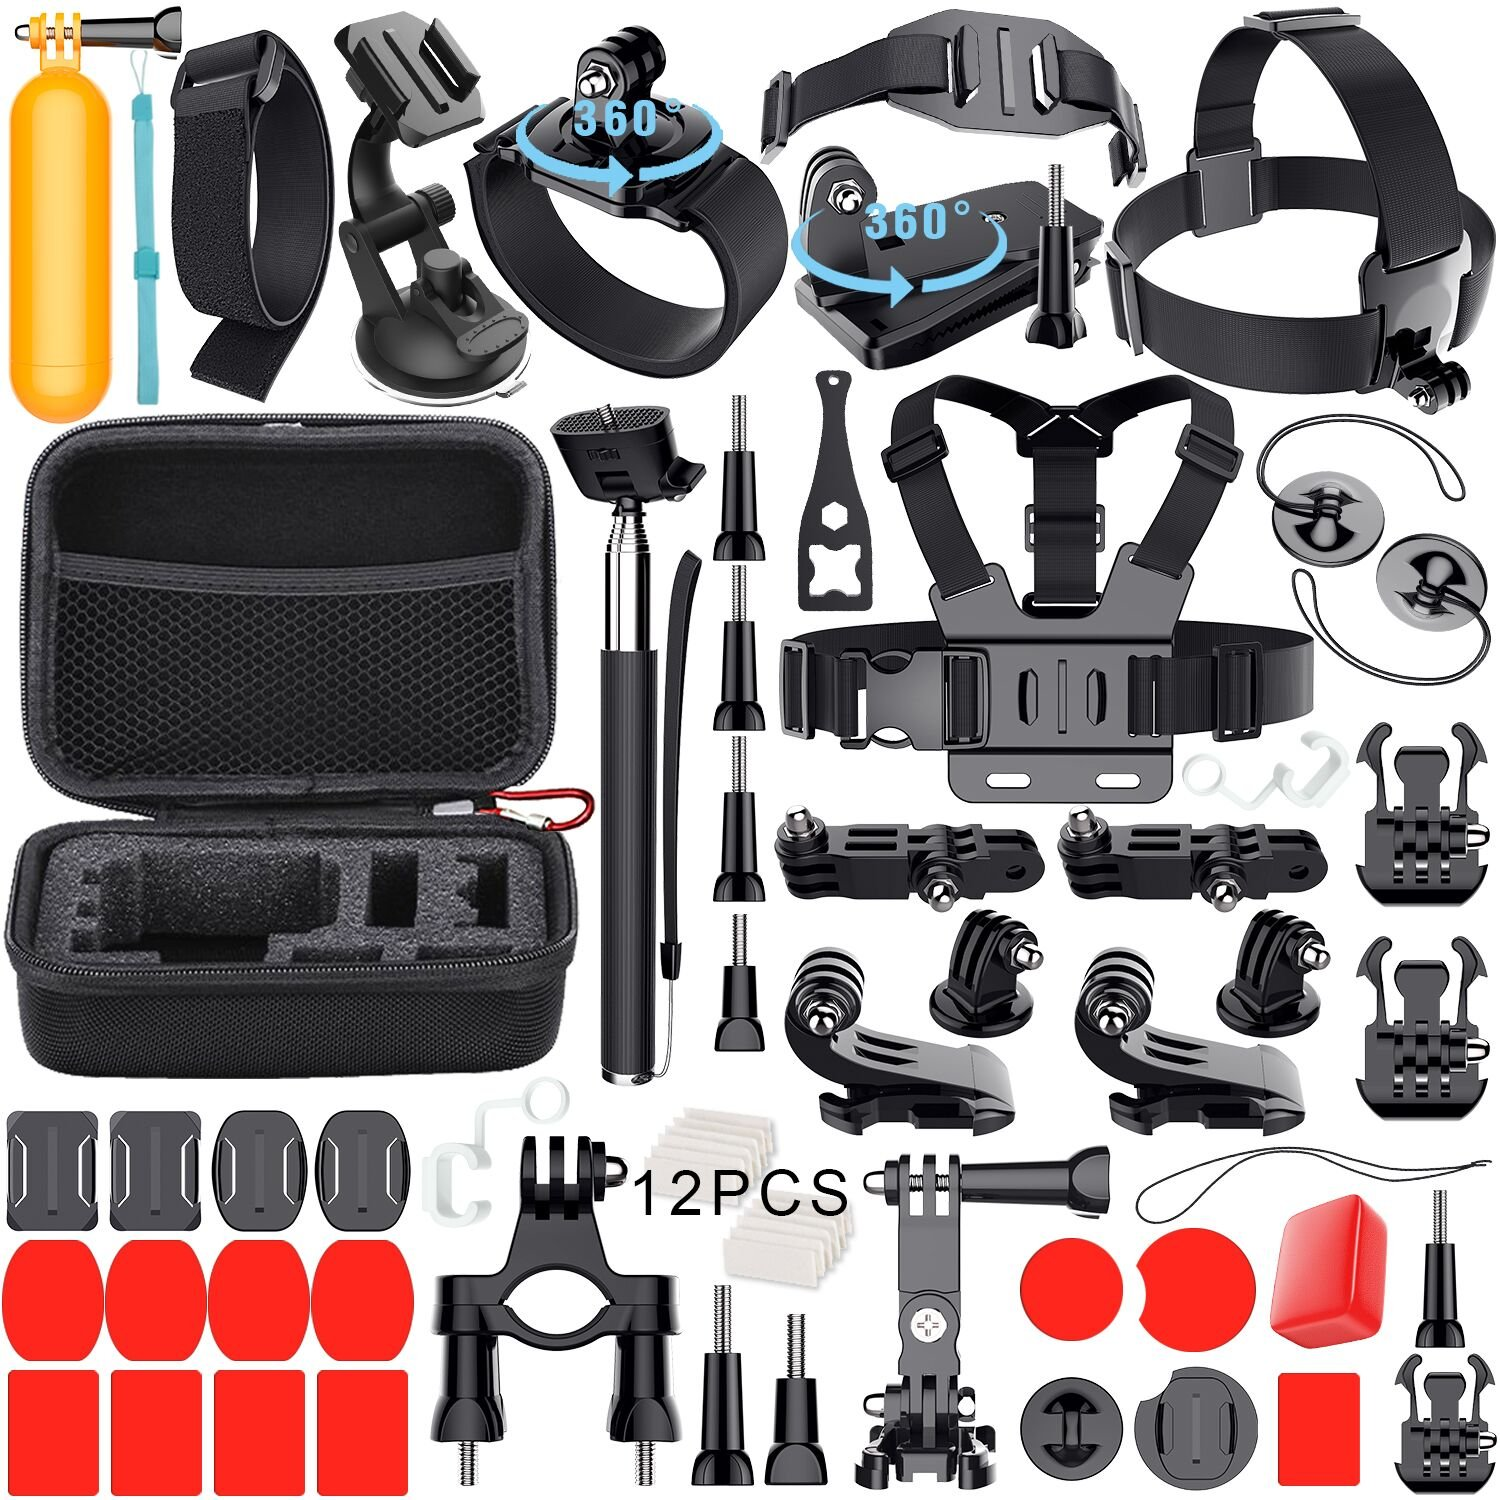 Leknes 54 in 1 Accessori Kit per GoPro Hero 5 4 3+ 3 2 1 Black Silver and SJCAM SJ4000 SJ5000 SJ6000